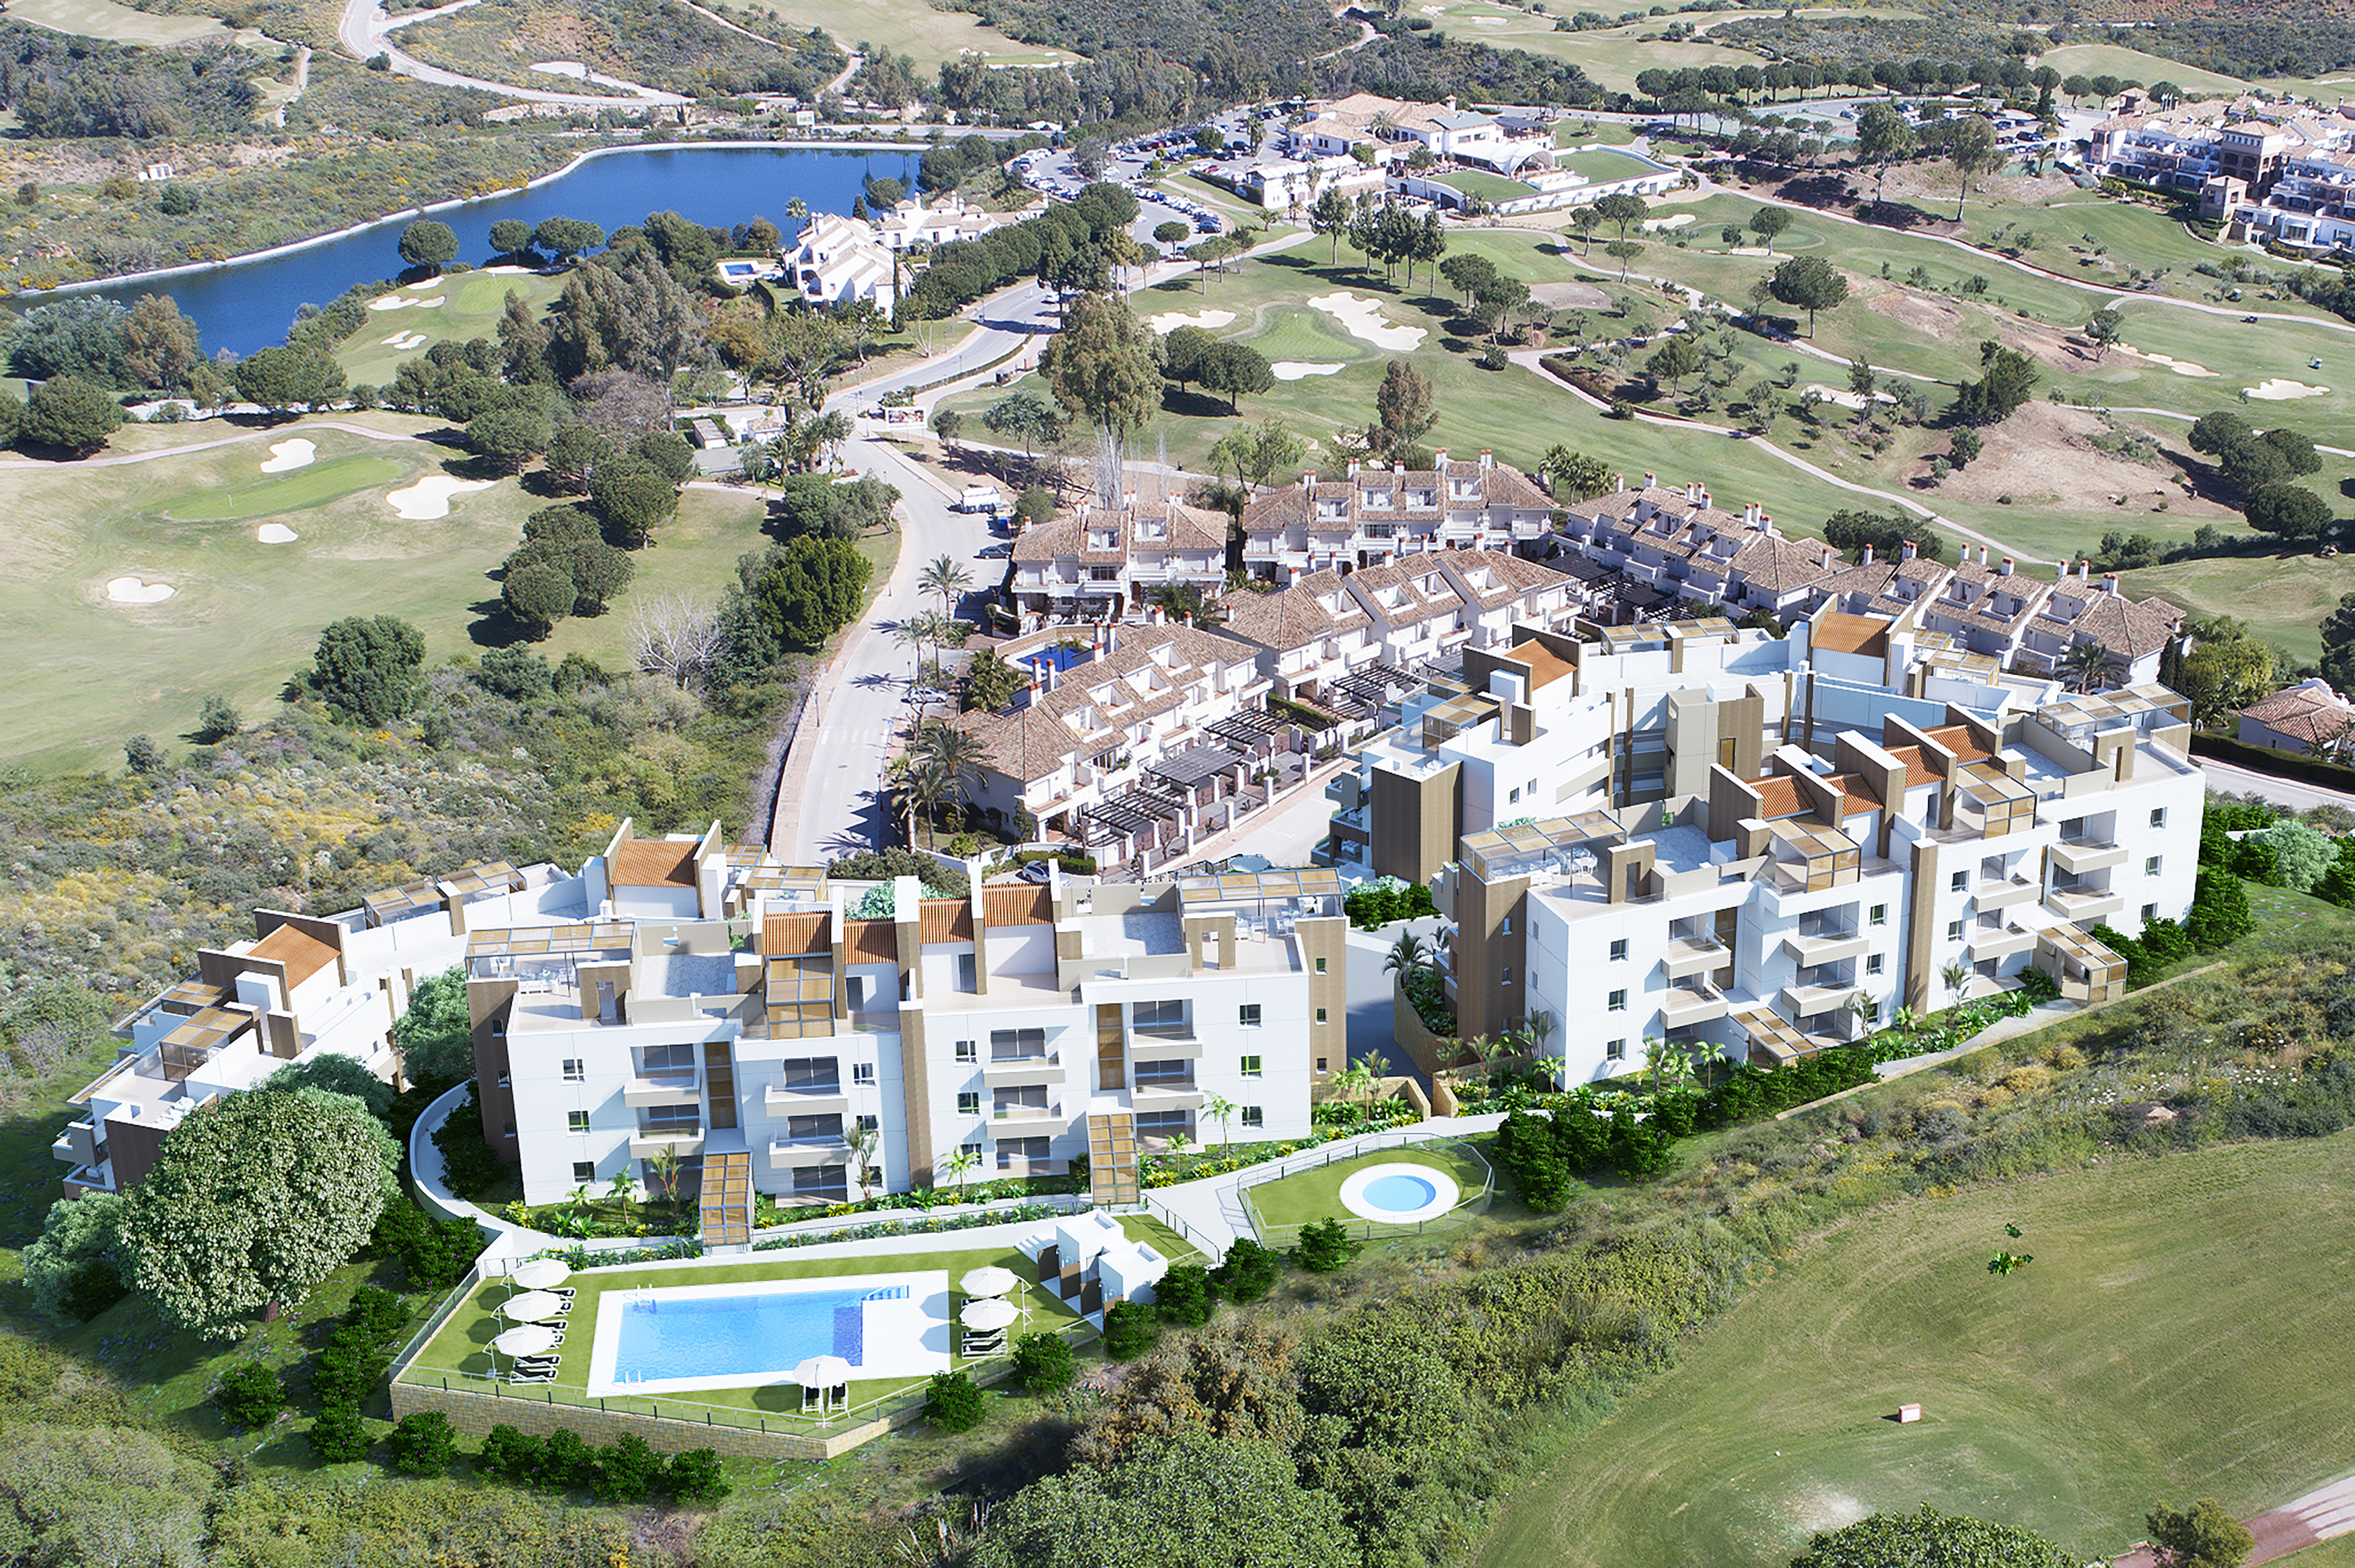 Dig the Davis Cup? Taylor Wimpey España serve up these ace holiday homes for tennis lovers